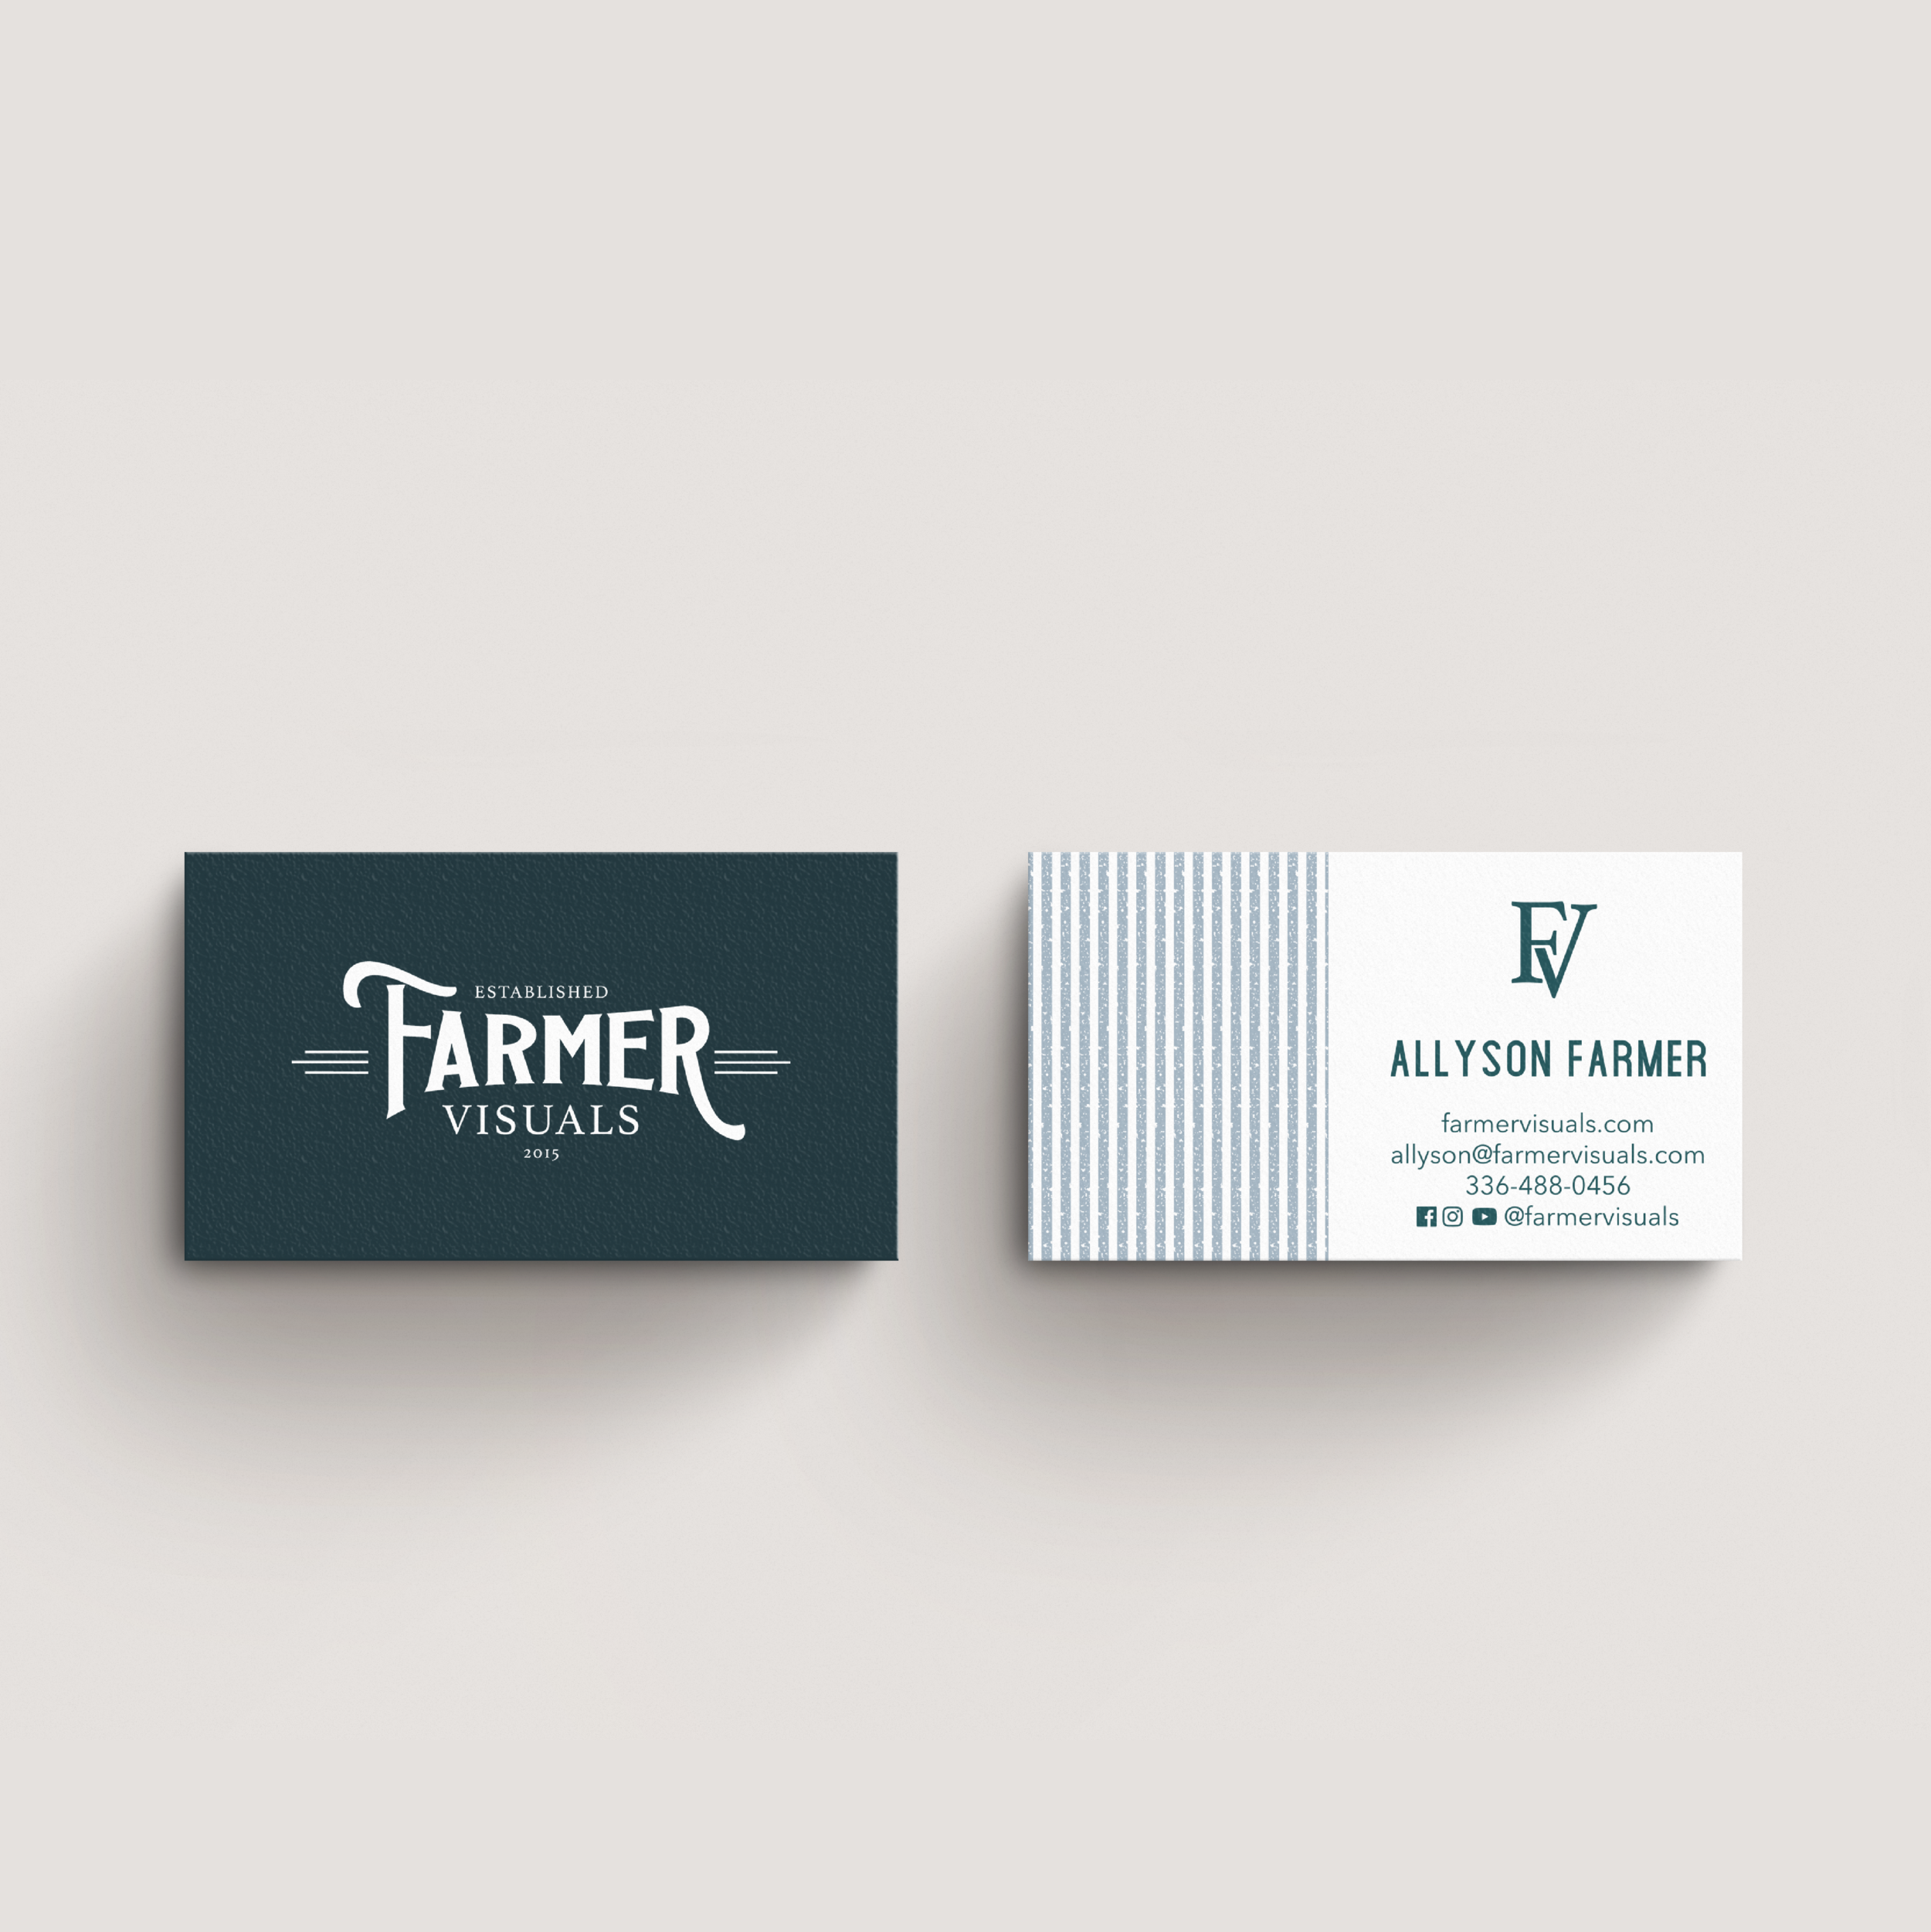 Farmer Visuals North Carolina Wedding Cinematic Videographers Brand and Logo Design by Kindly by Kelsea